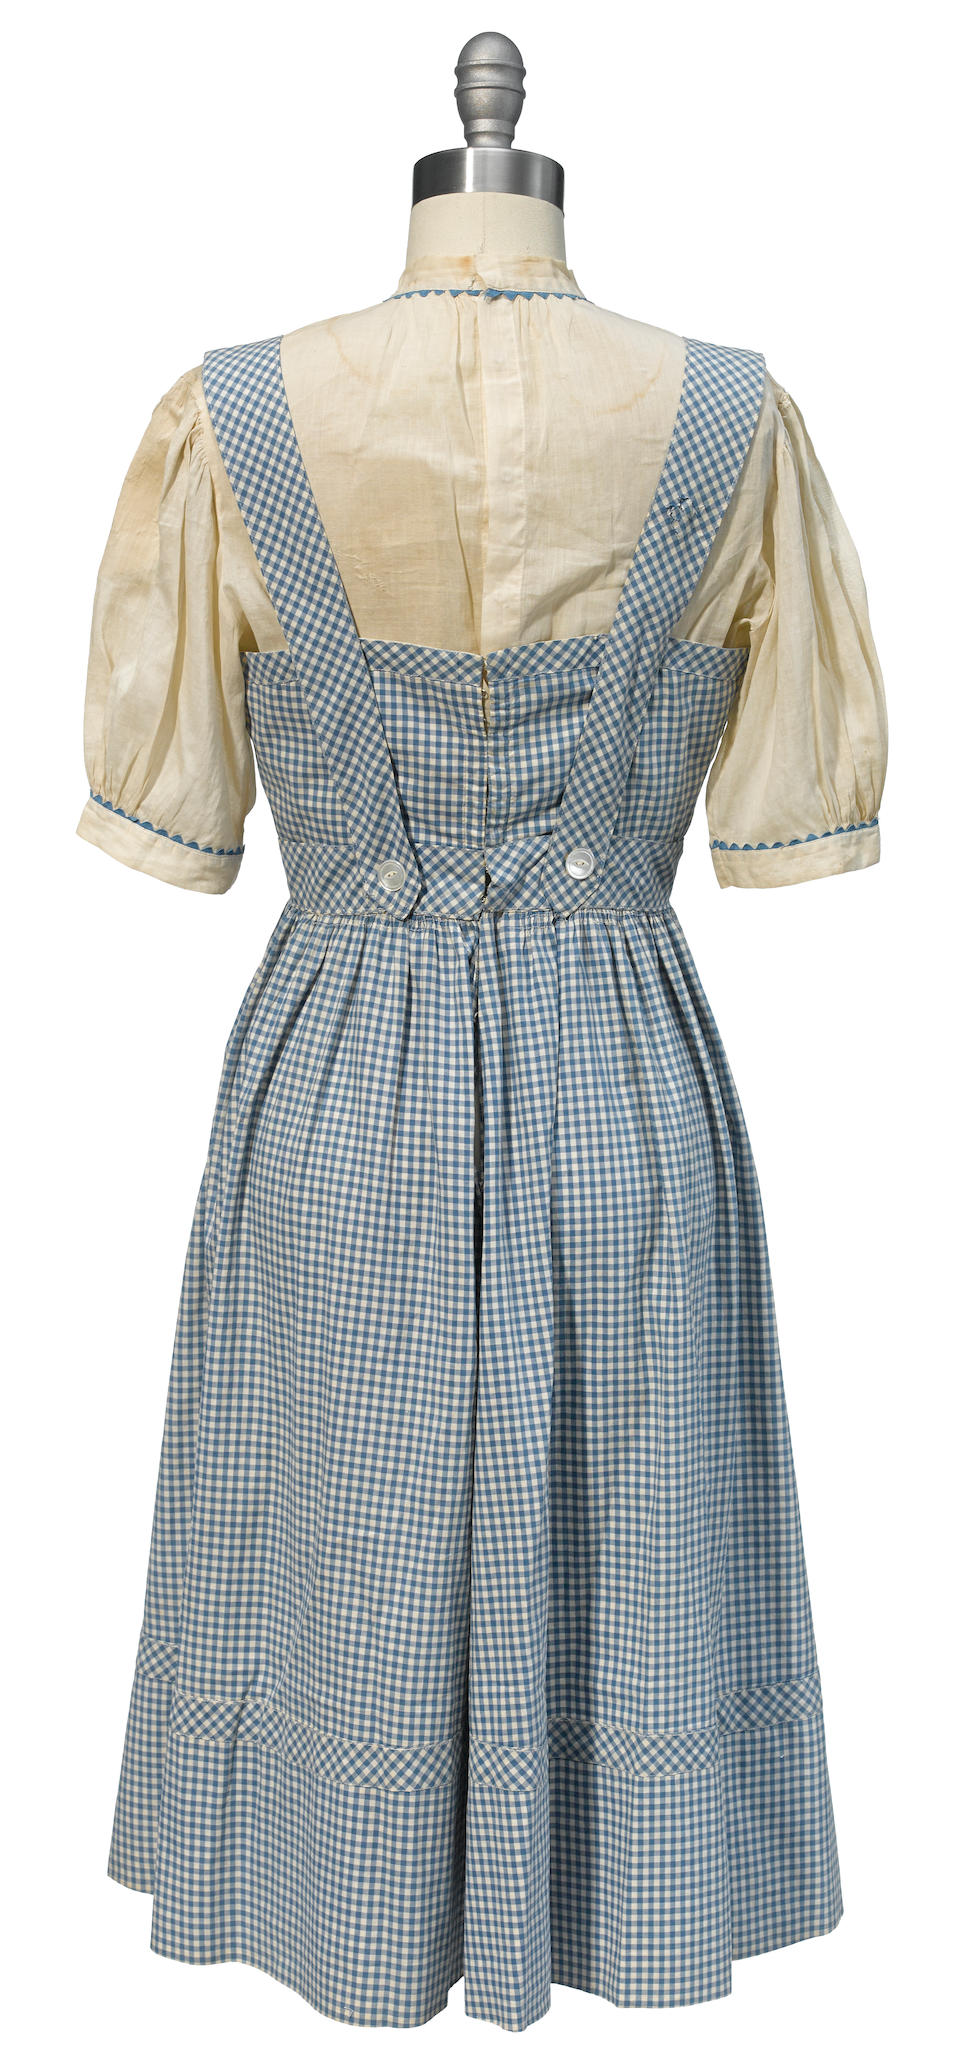 "A Judy Garland-worn ""Dorothy"" dress from The Wizard of Oz"